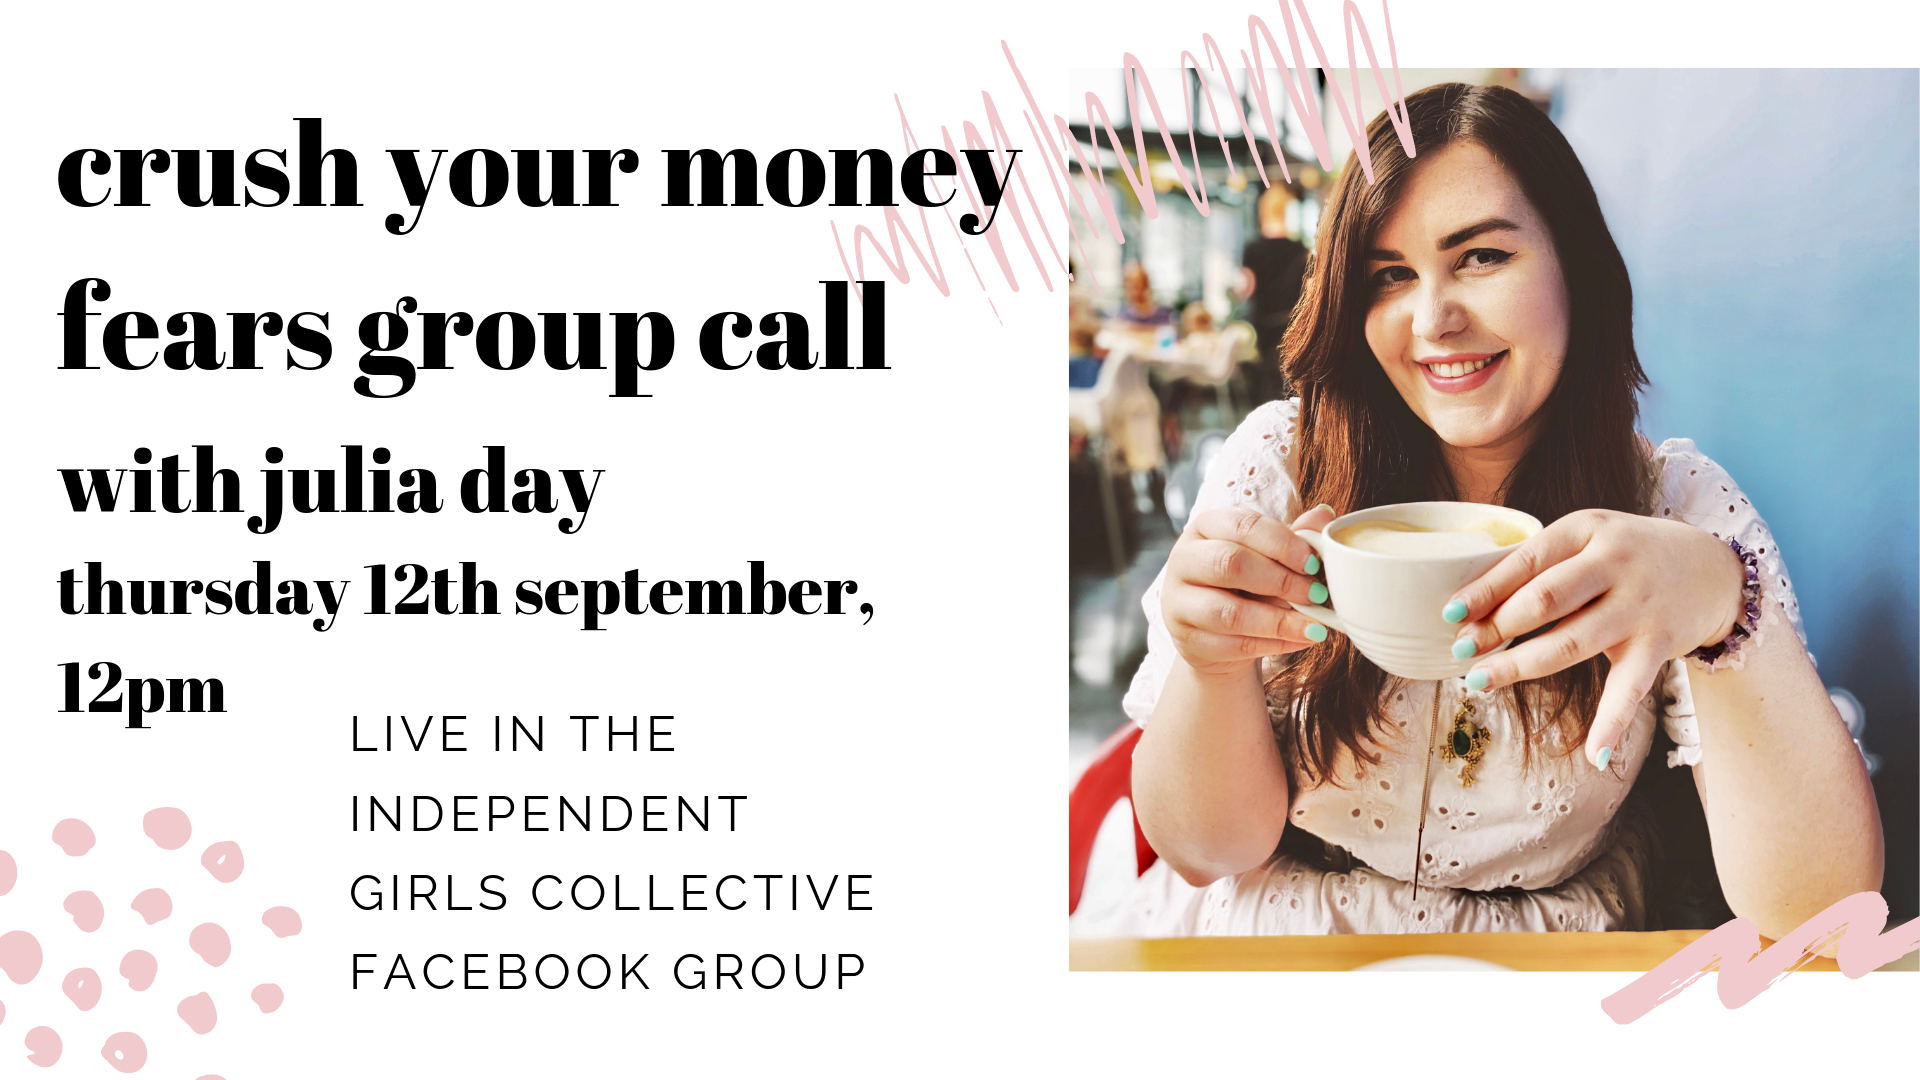 crush your money fearsgroup call (1).png